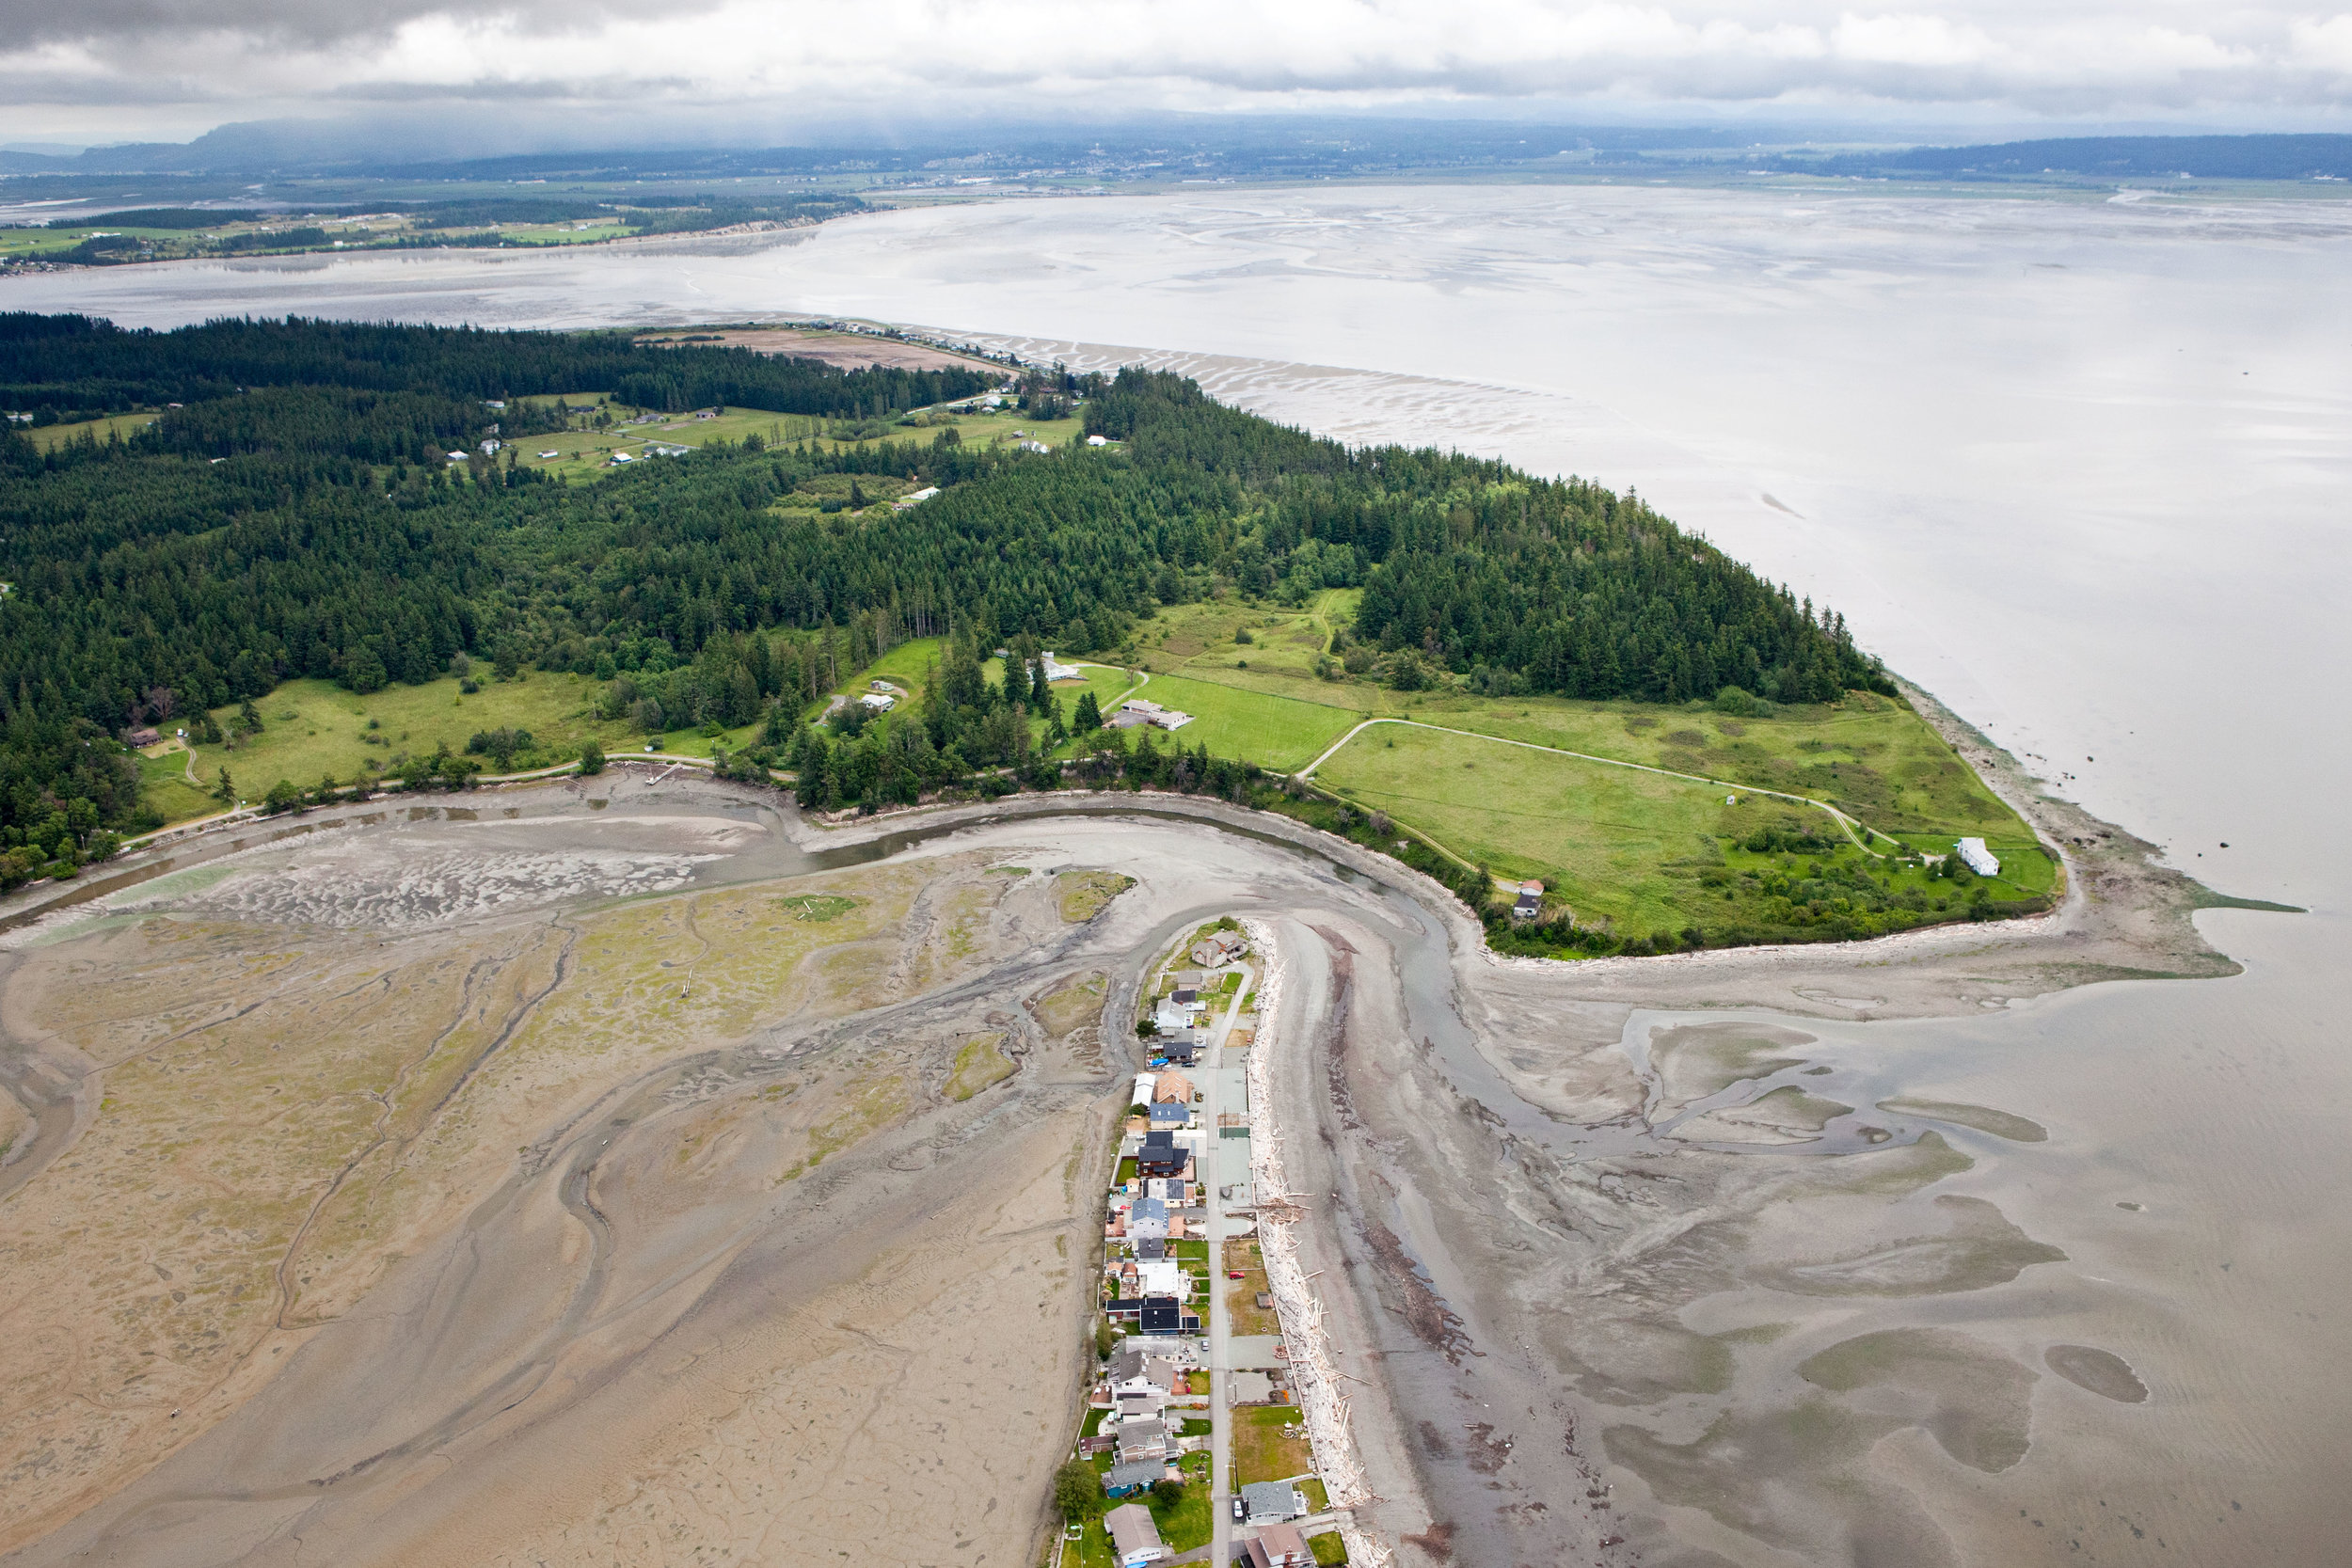 Barnum Point on Camano Island feeds sediment out into Port Susan Bay and Puget Sound. © Benj Drummond with aerial support from Lighthawk.